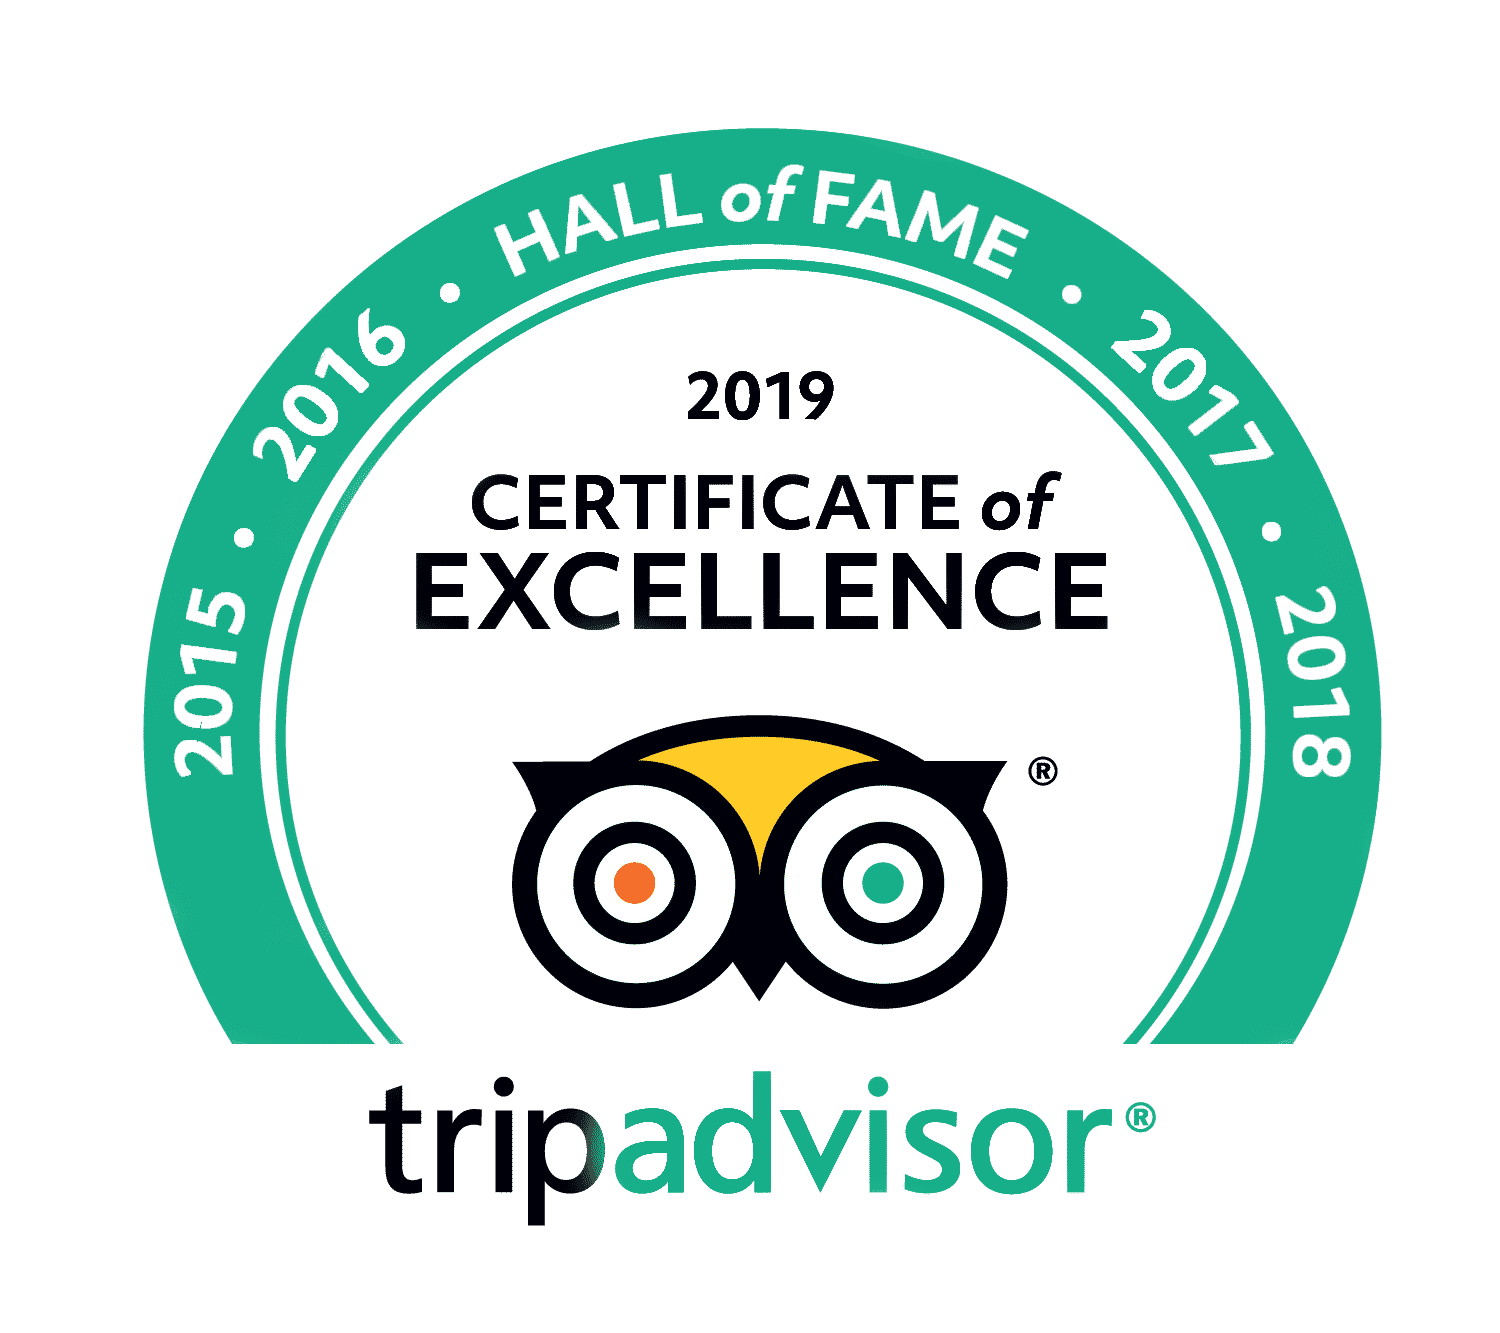 2019 TripAdvisor Hall of Fame logo